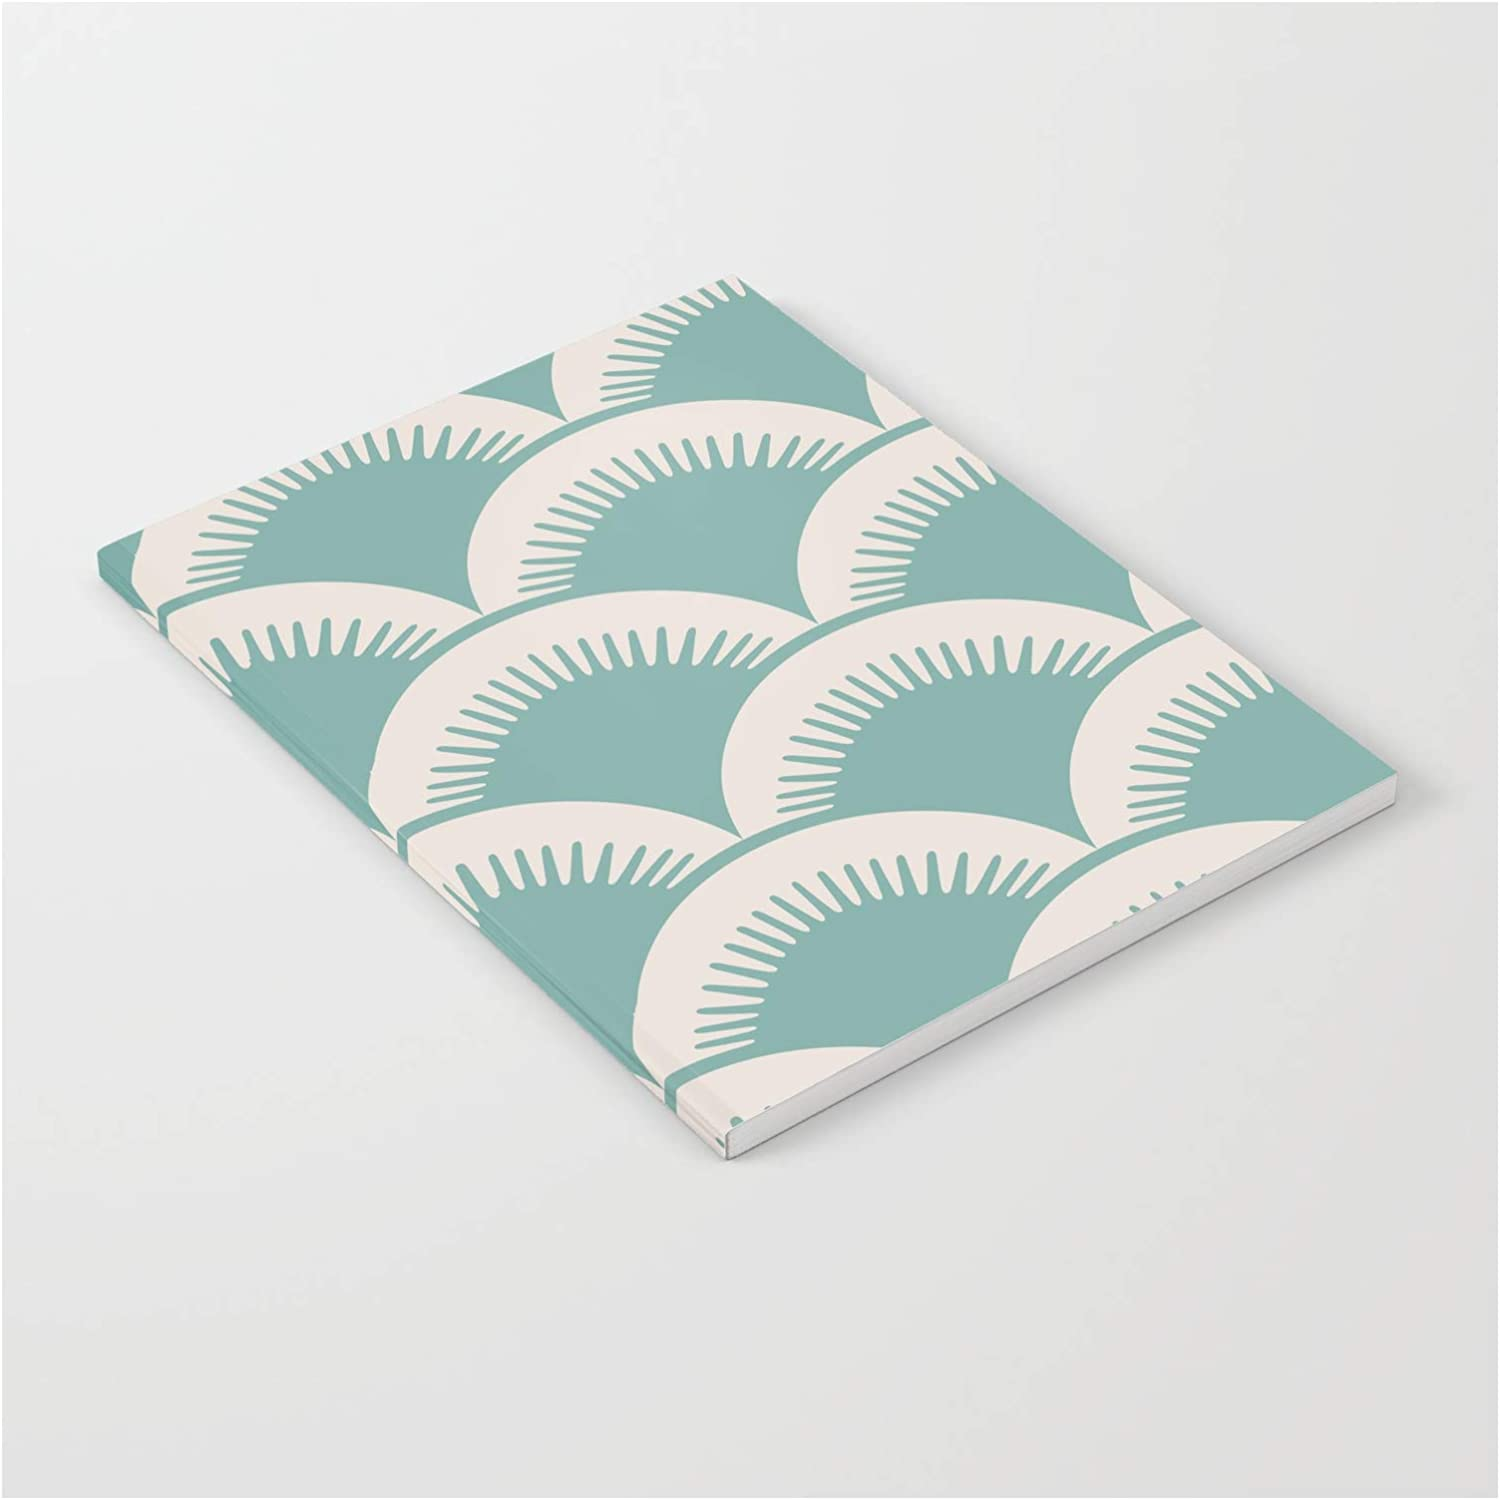 Free shipping on posting reviews Japanese Fan Kansas City Mall Pattern Foam Green And on by Magner Note Tony Beige